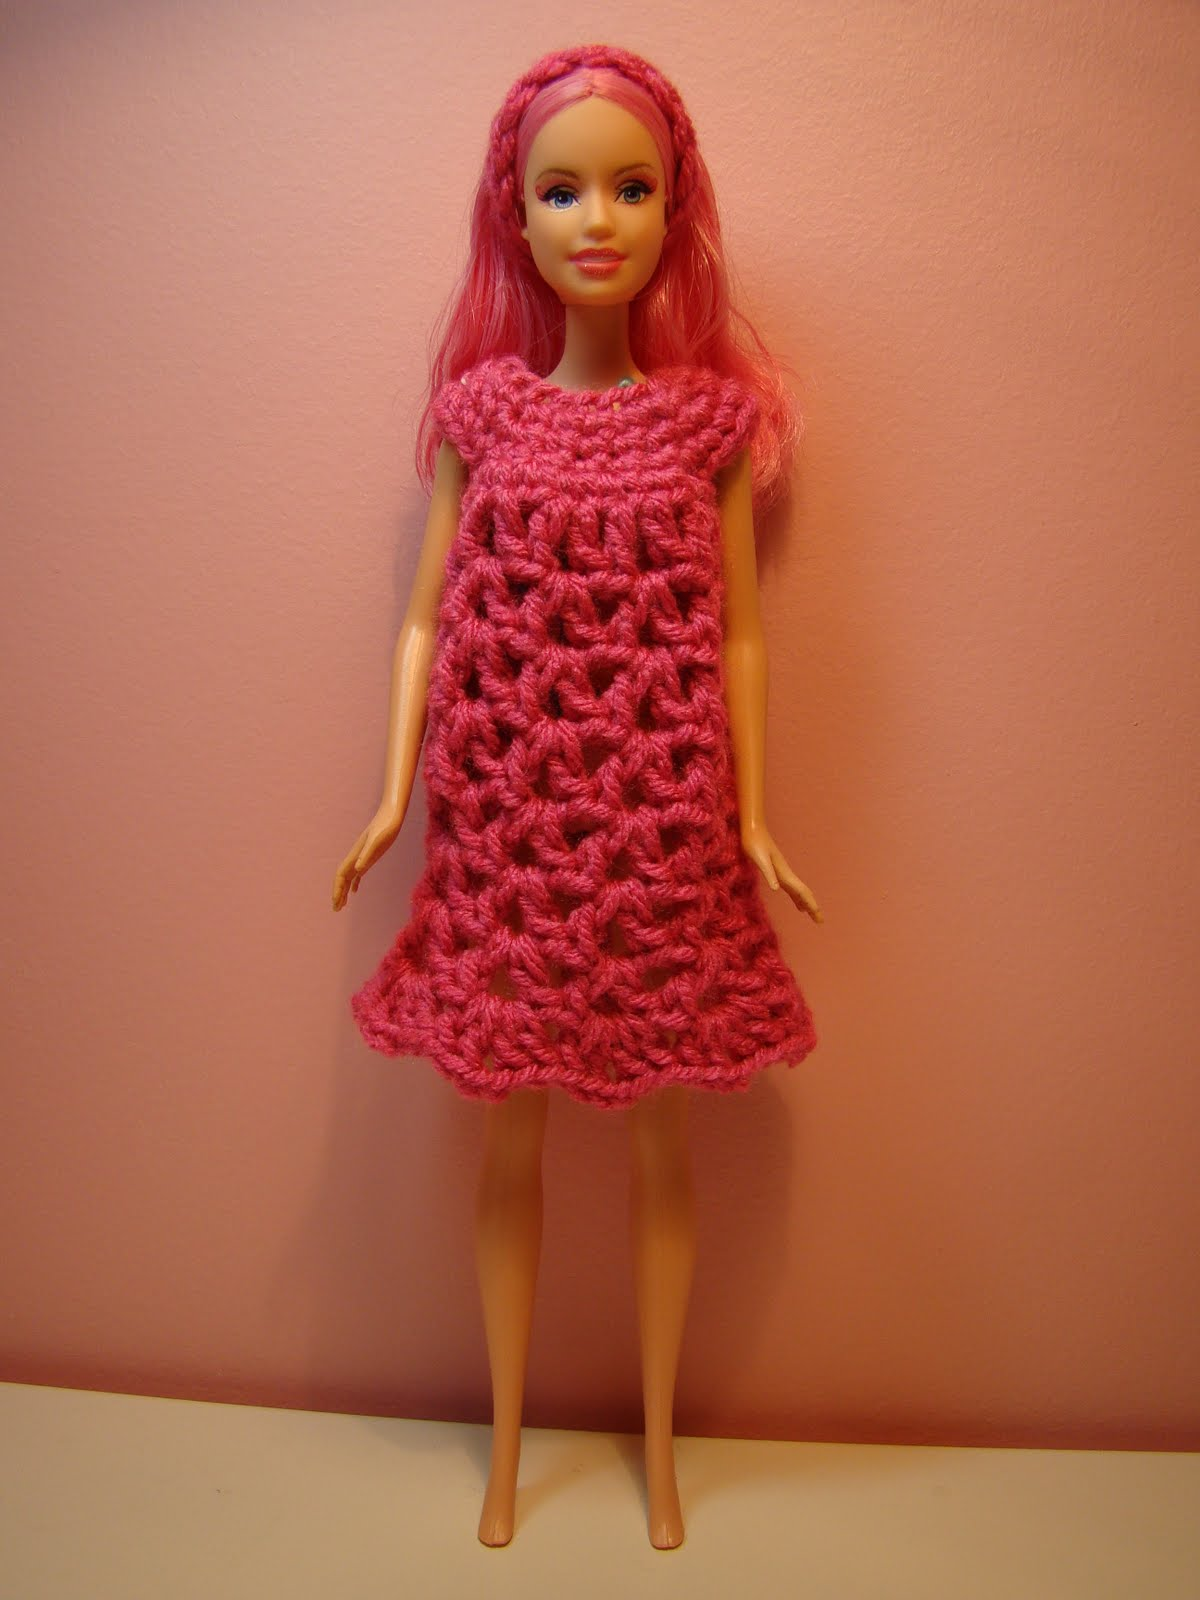 Craft Closet: Crochet Barbie Clothes